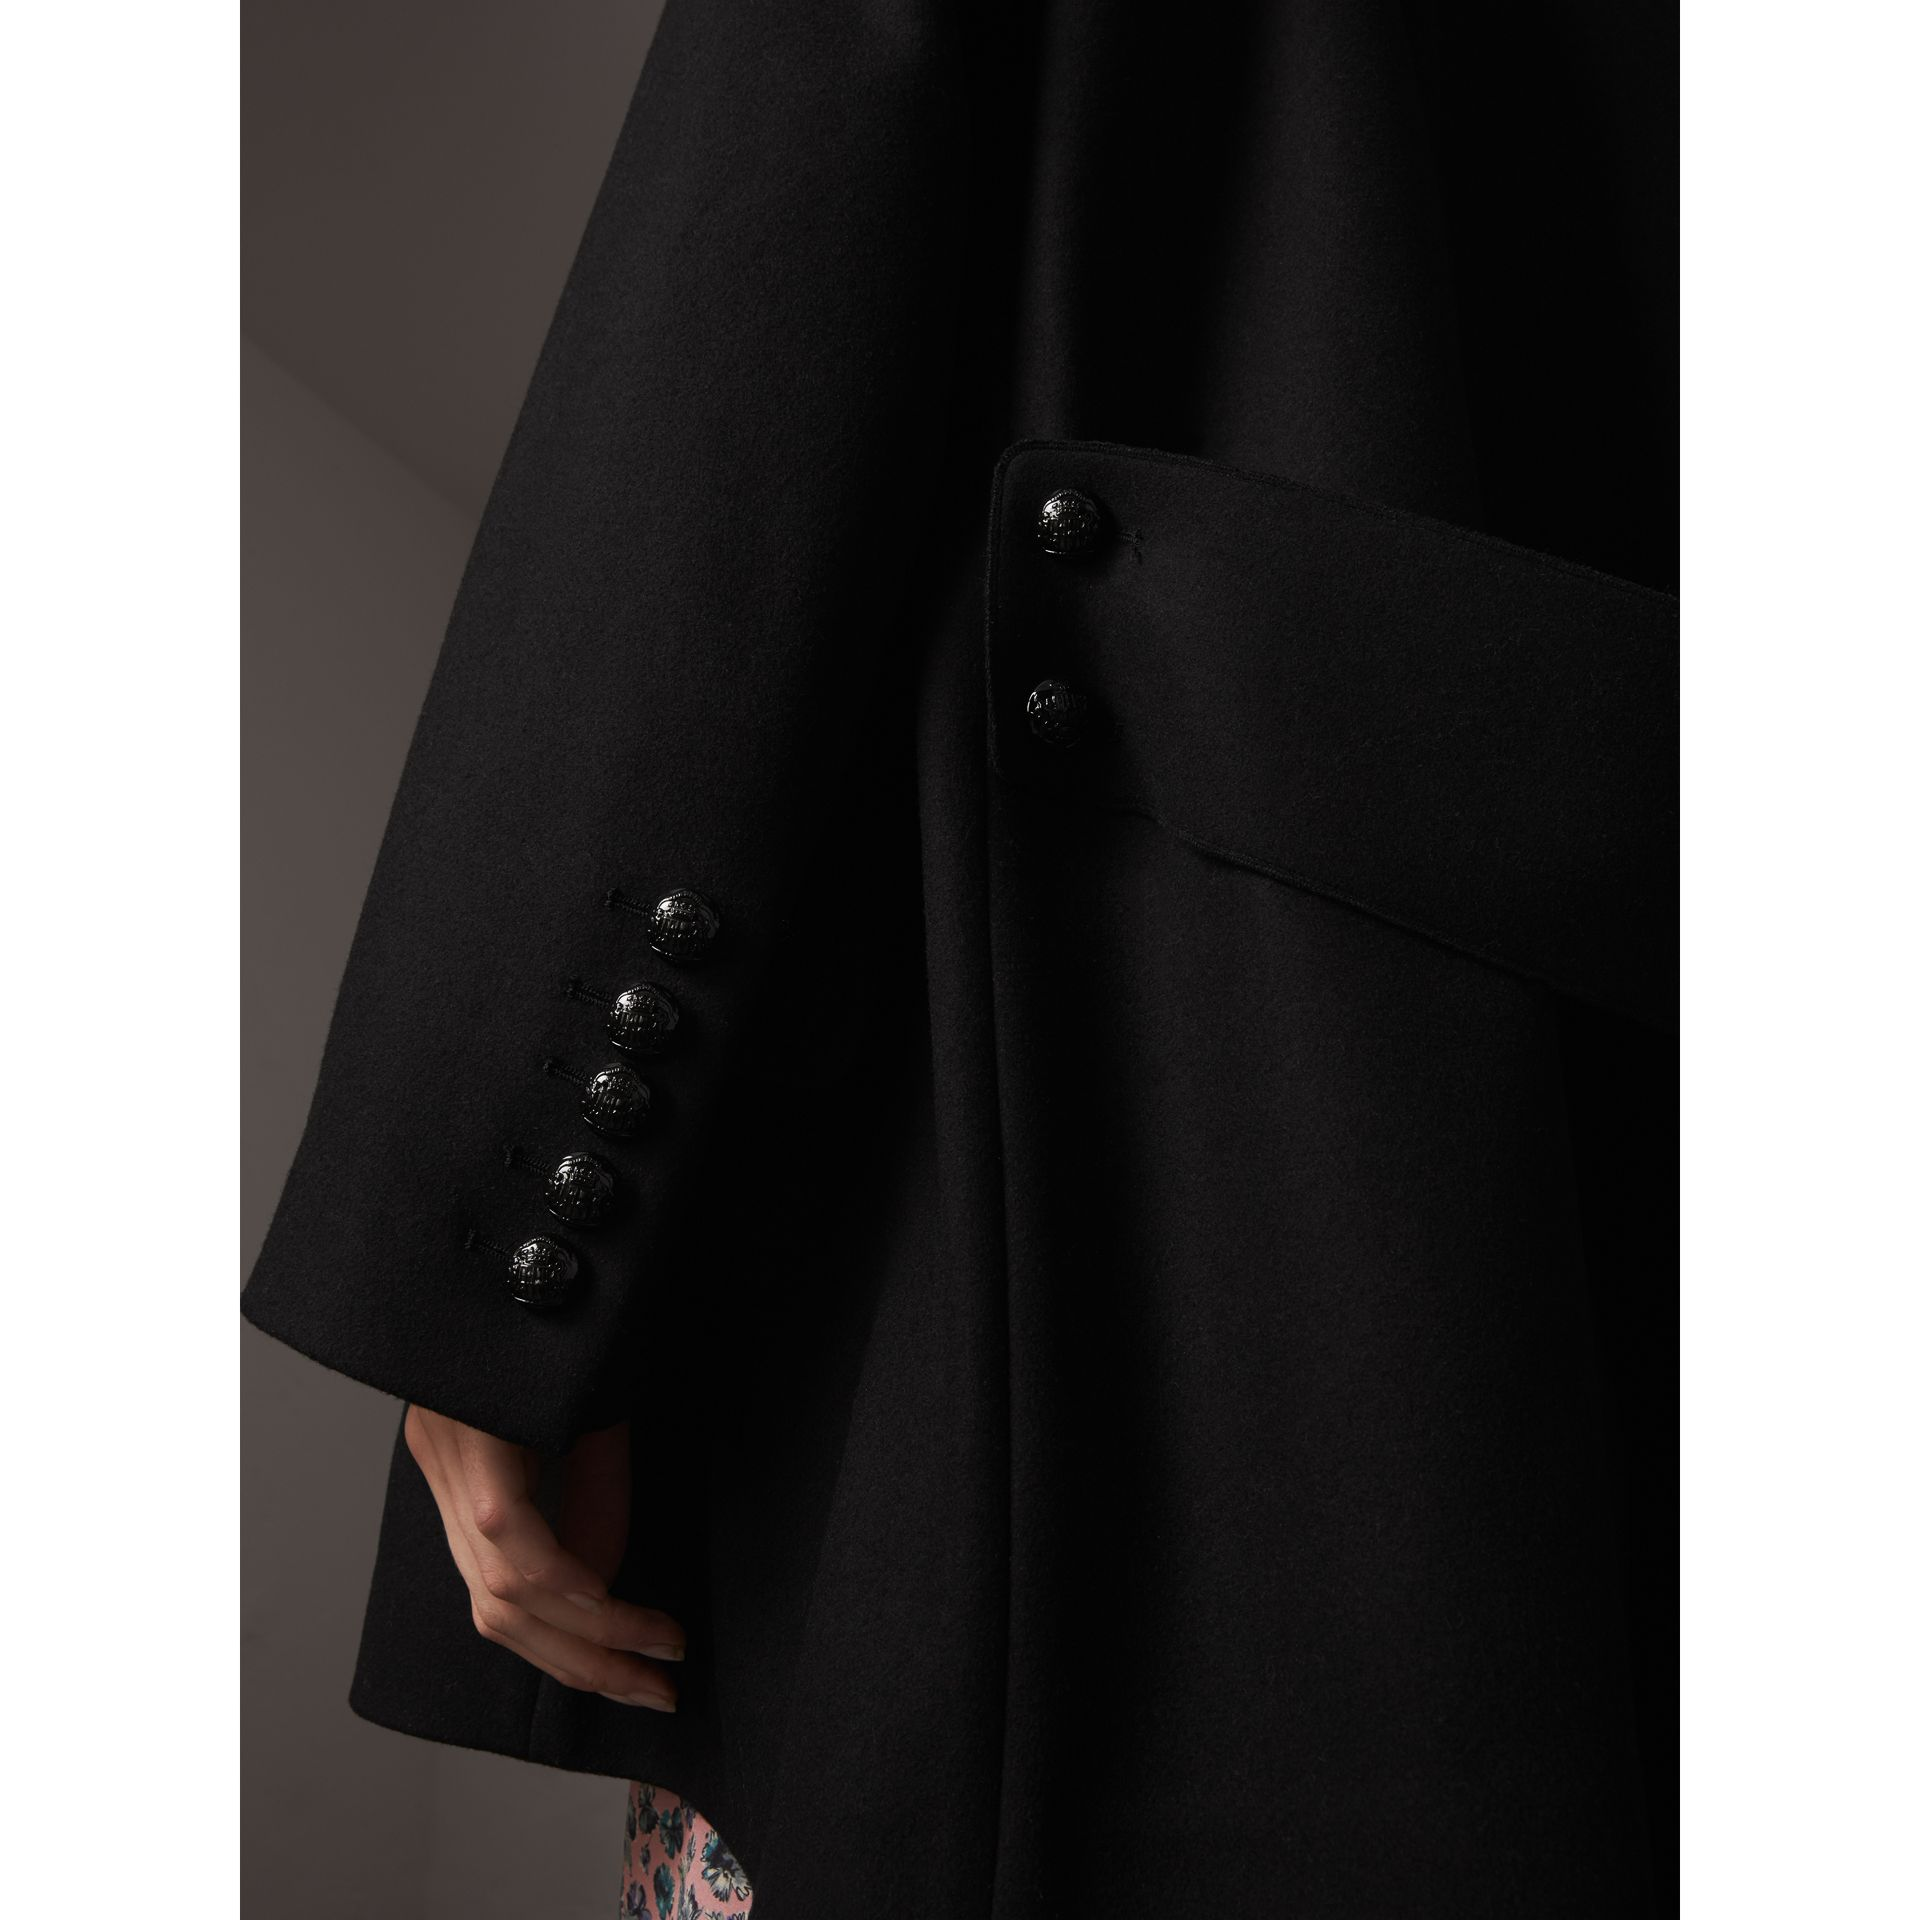 Wool Blend Pea Coat in Black - Women | Burberry - gallery image 2